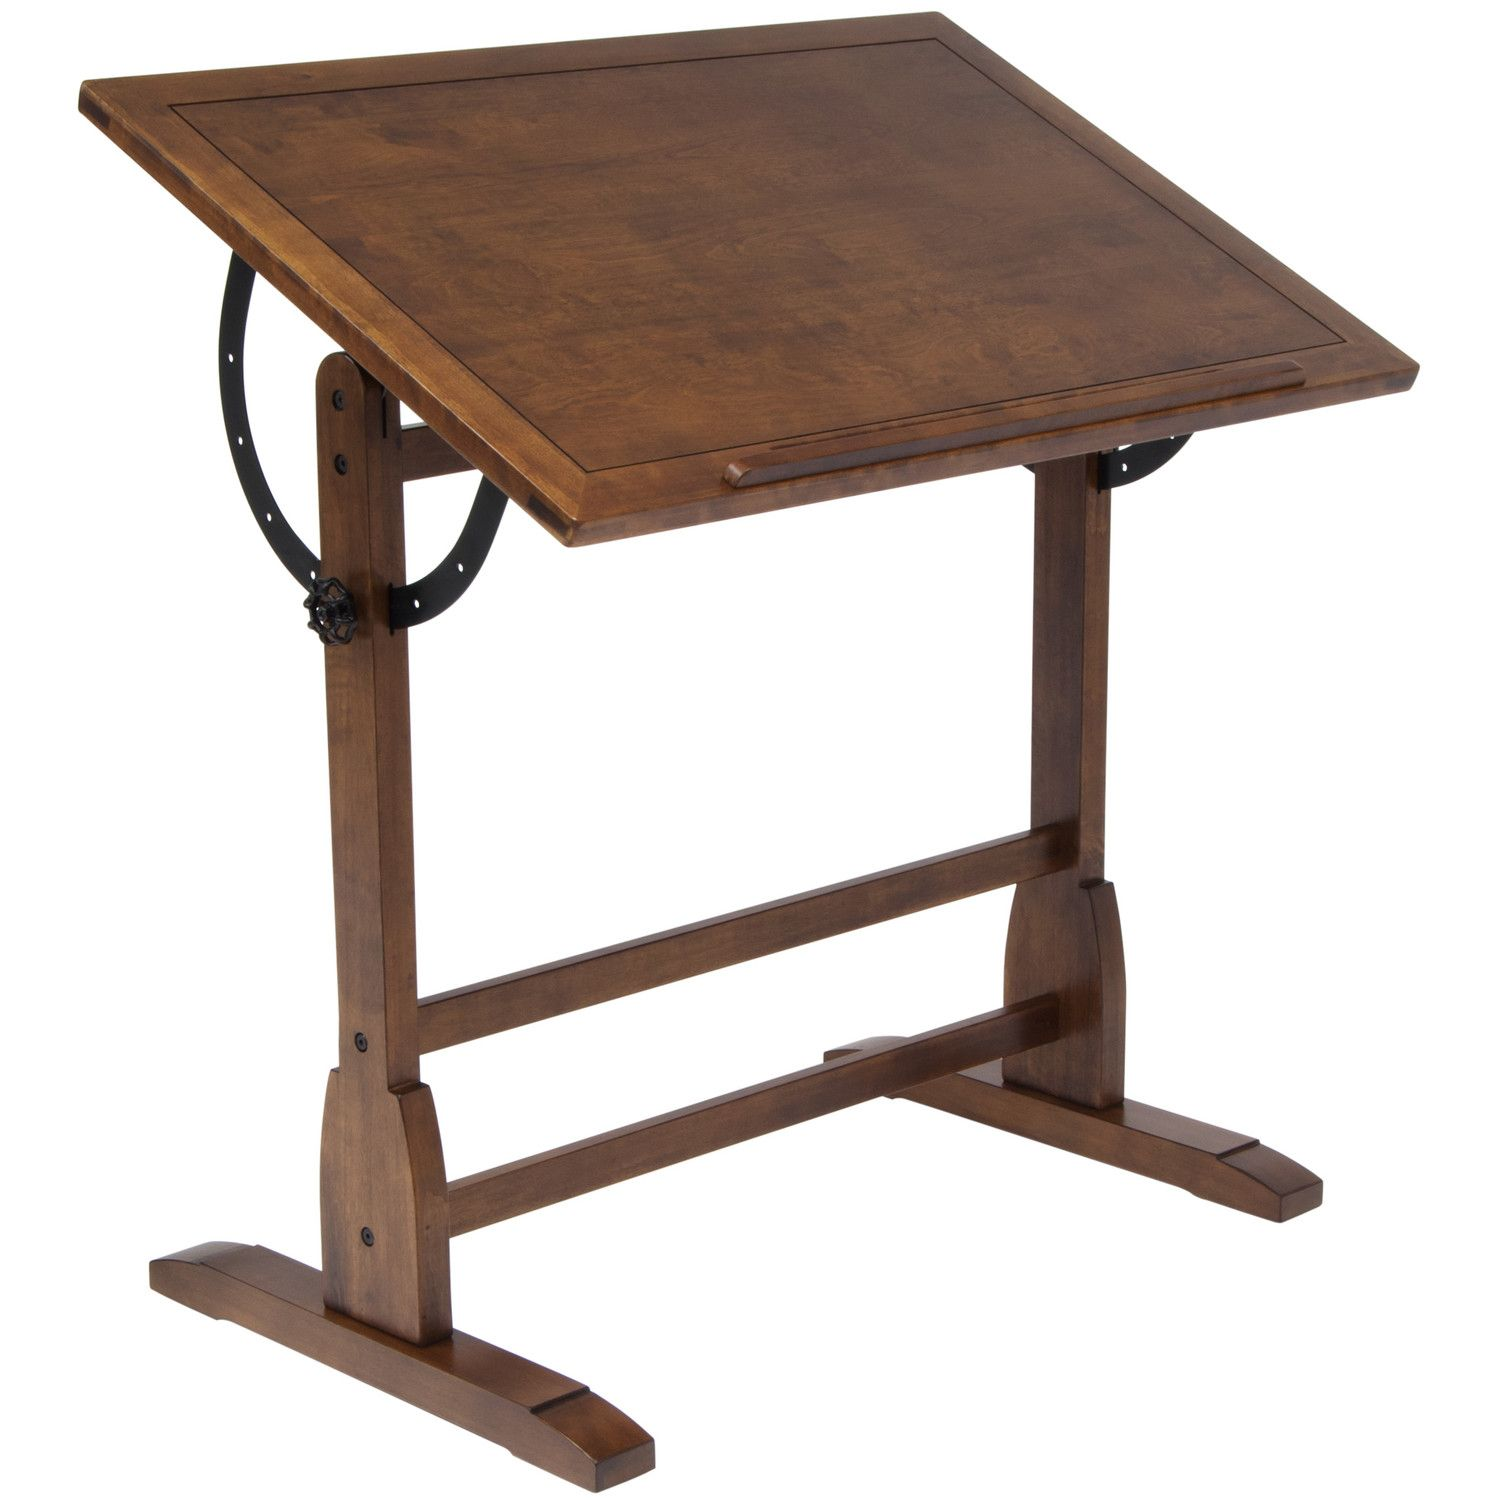 Features   Adjustable angle table top from flat to 90 degrees   Built in  Vintage  WoodAntique. Features   Adjustable angle table top from flat to 90 degrees